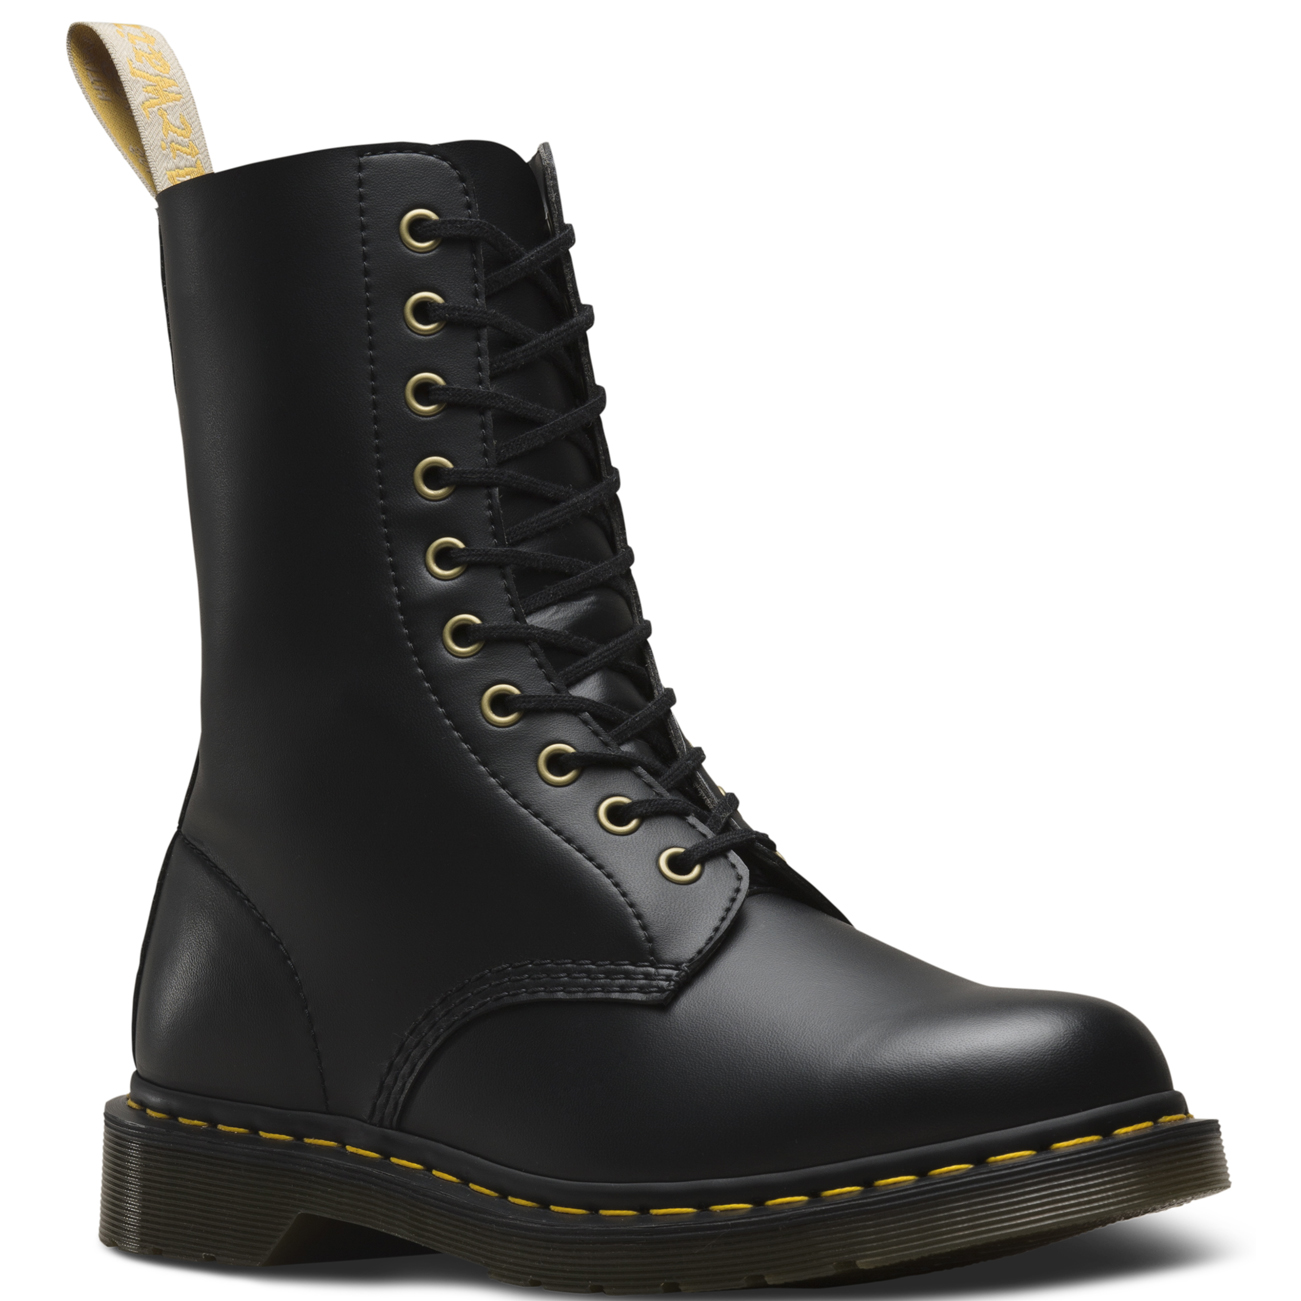 Unisex Adults Dr Martens 1460 Vegan Originals